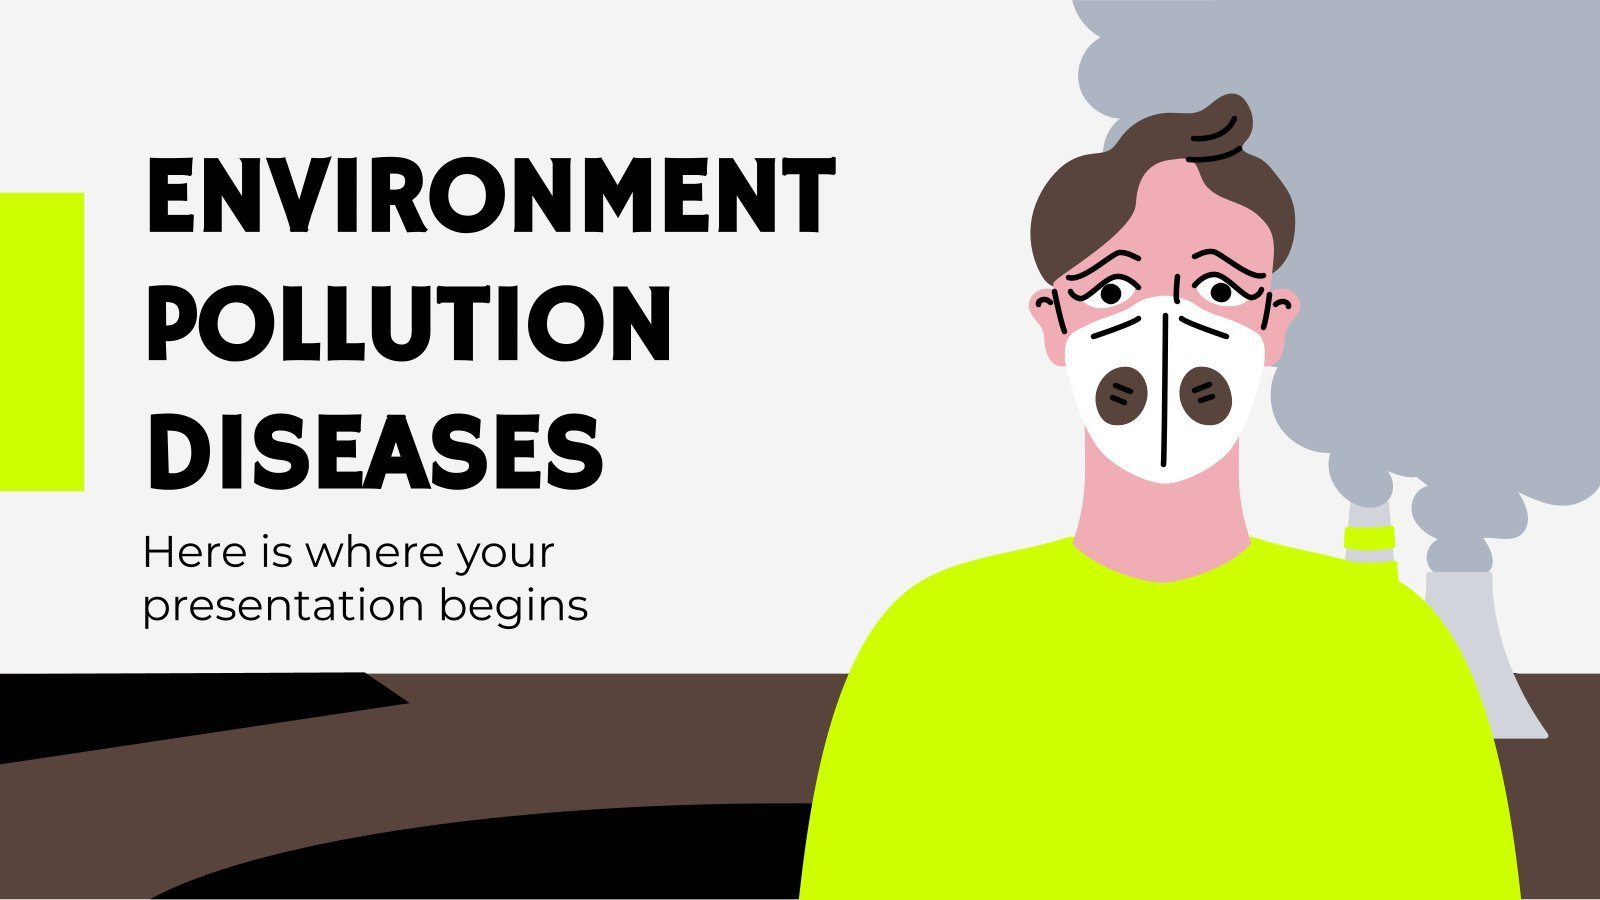 Environment Pollution Diseases presentation template